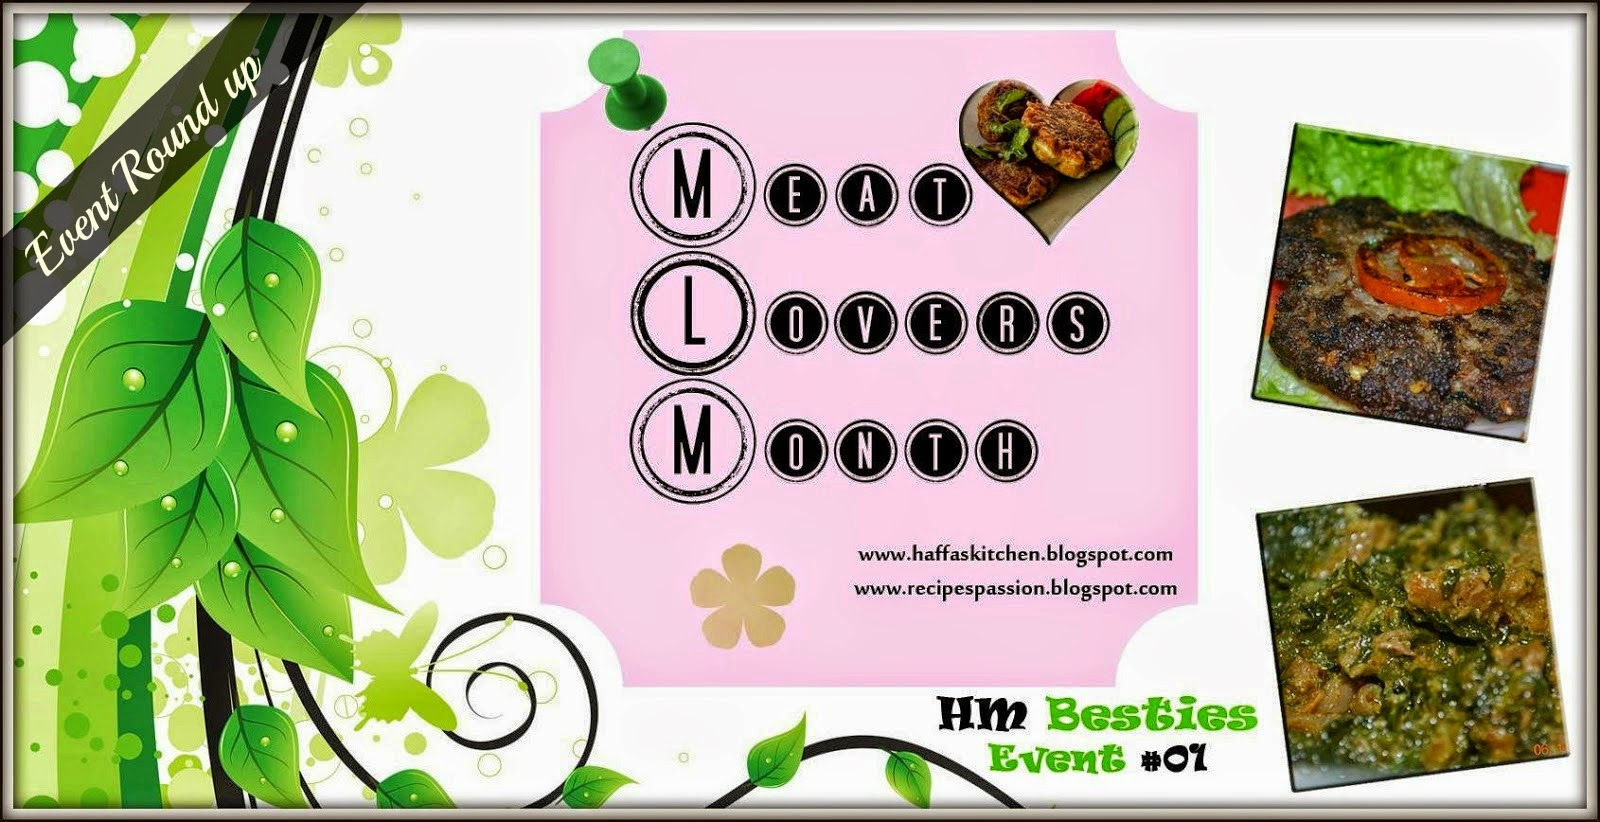 blog events| Event Announcement, Events| Eid ul azha recipes| Haffa Monu Event| Meat Lovers Month| HM Besties Event #1| Meat recipes